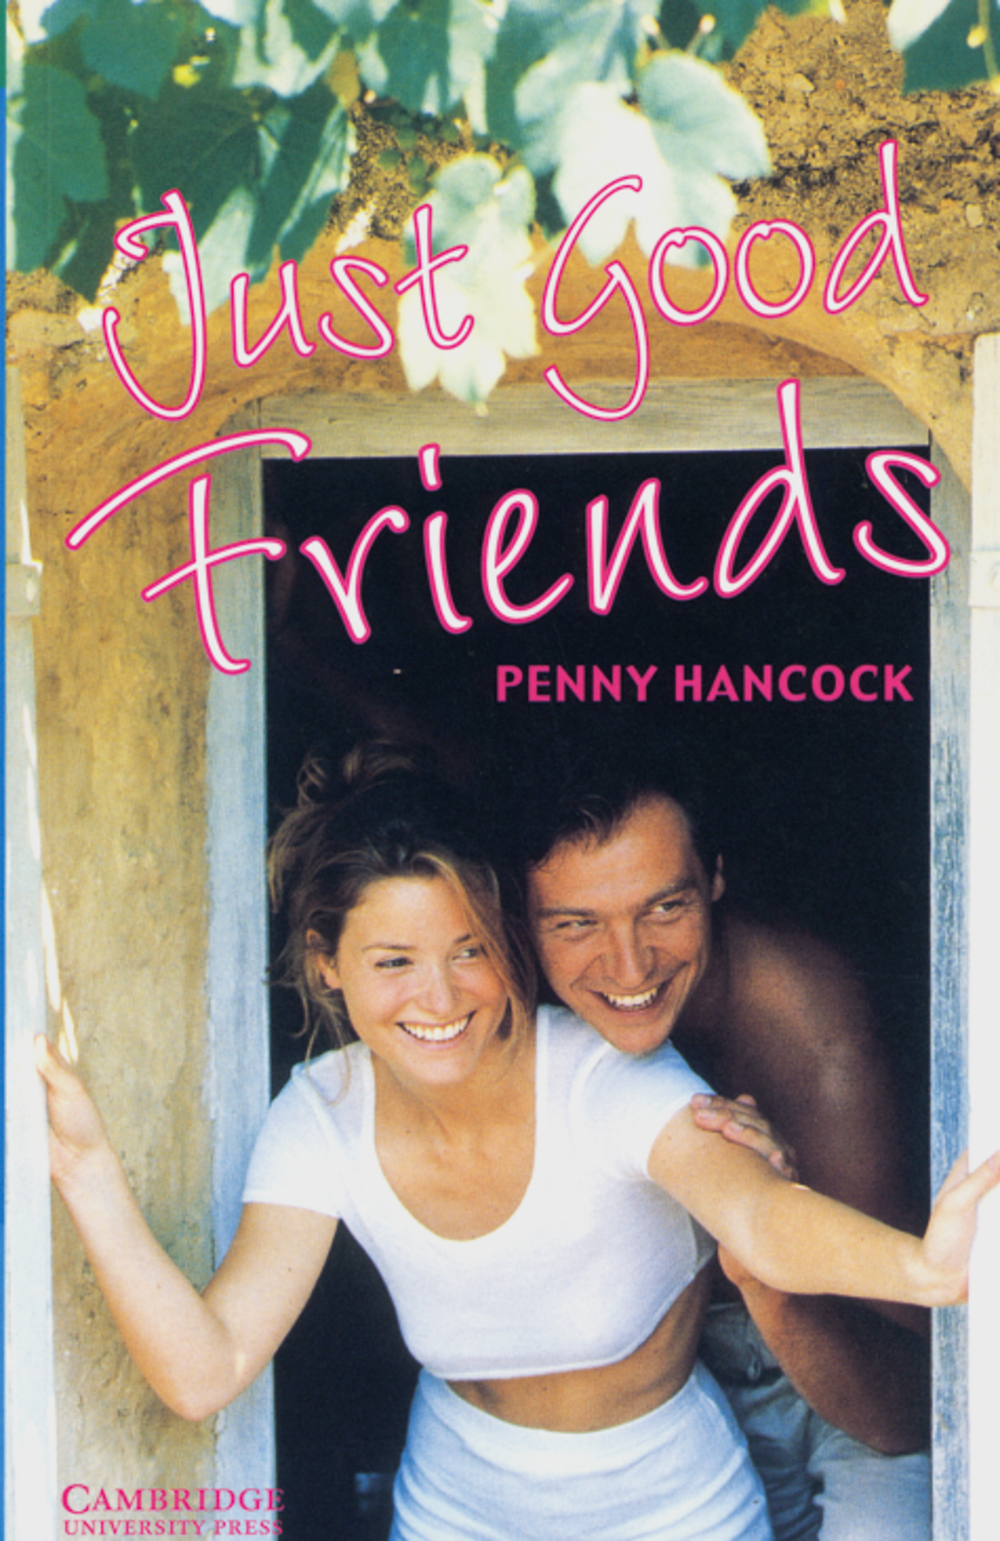 Penny Hancock - Just Good Friends